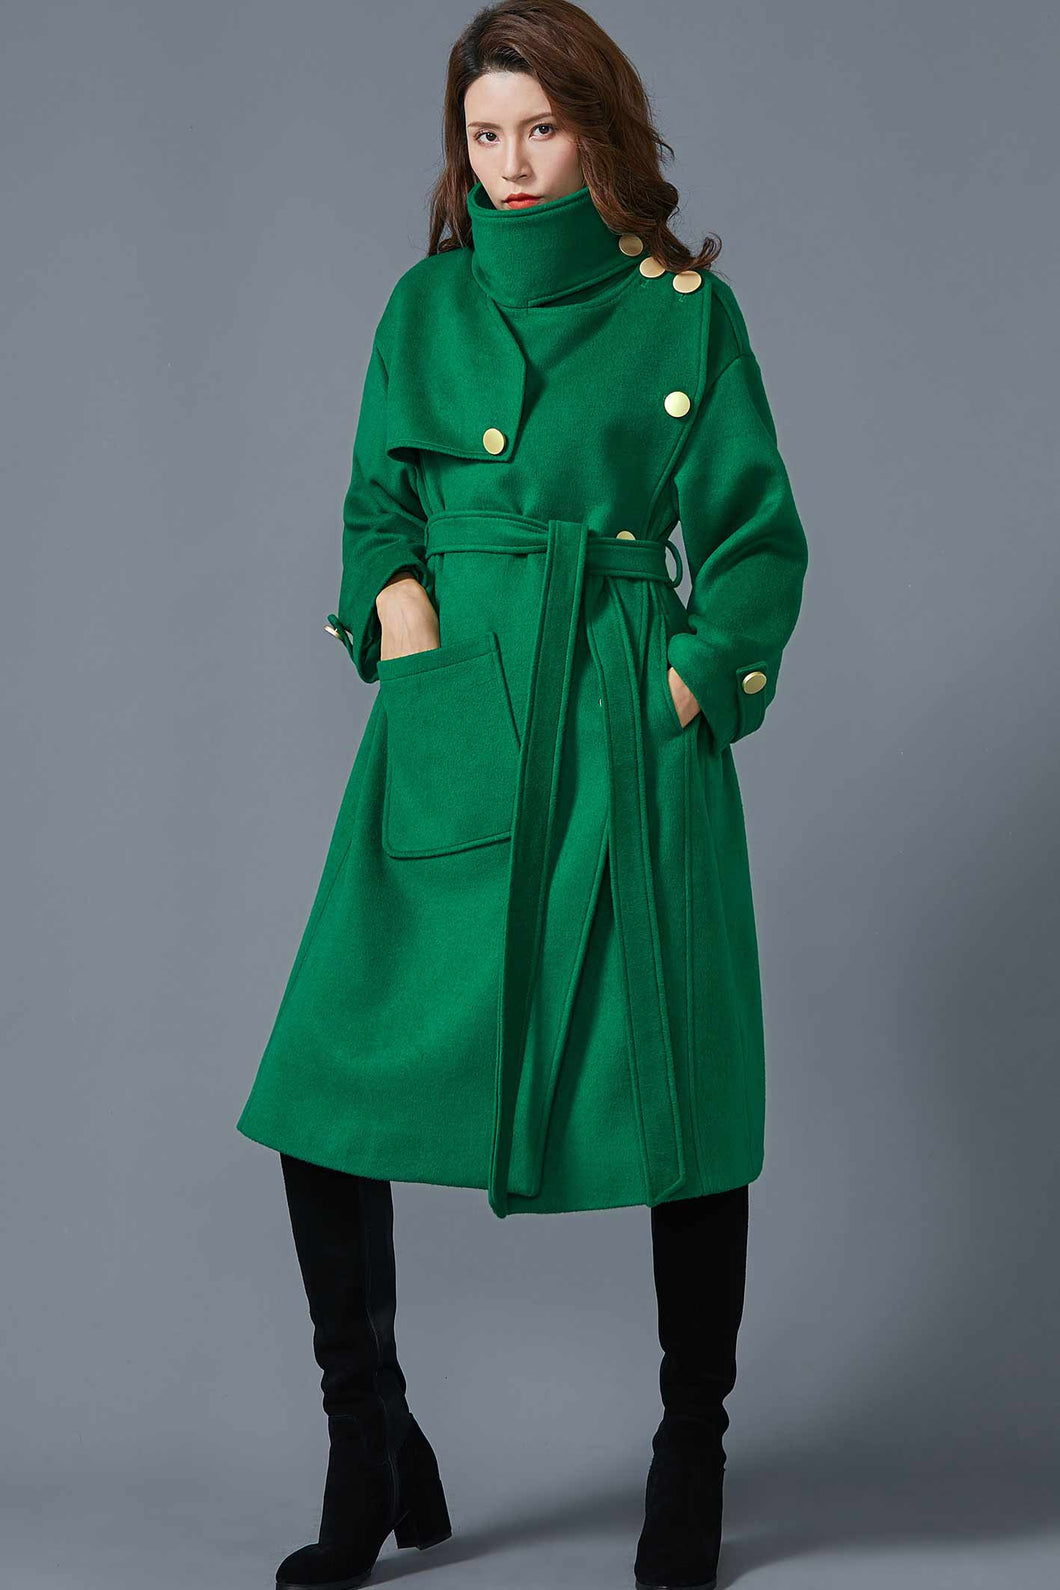 Green wool winter coat coat with pockets C1615#